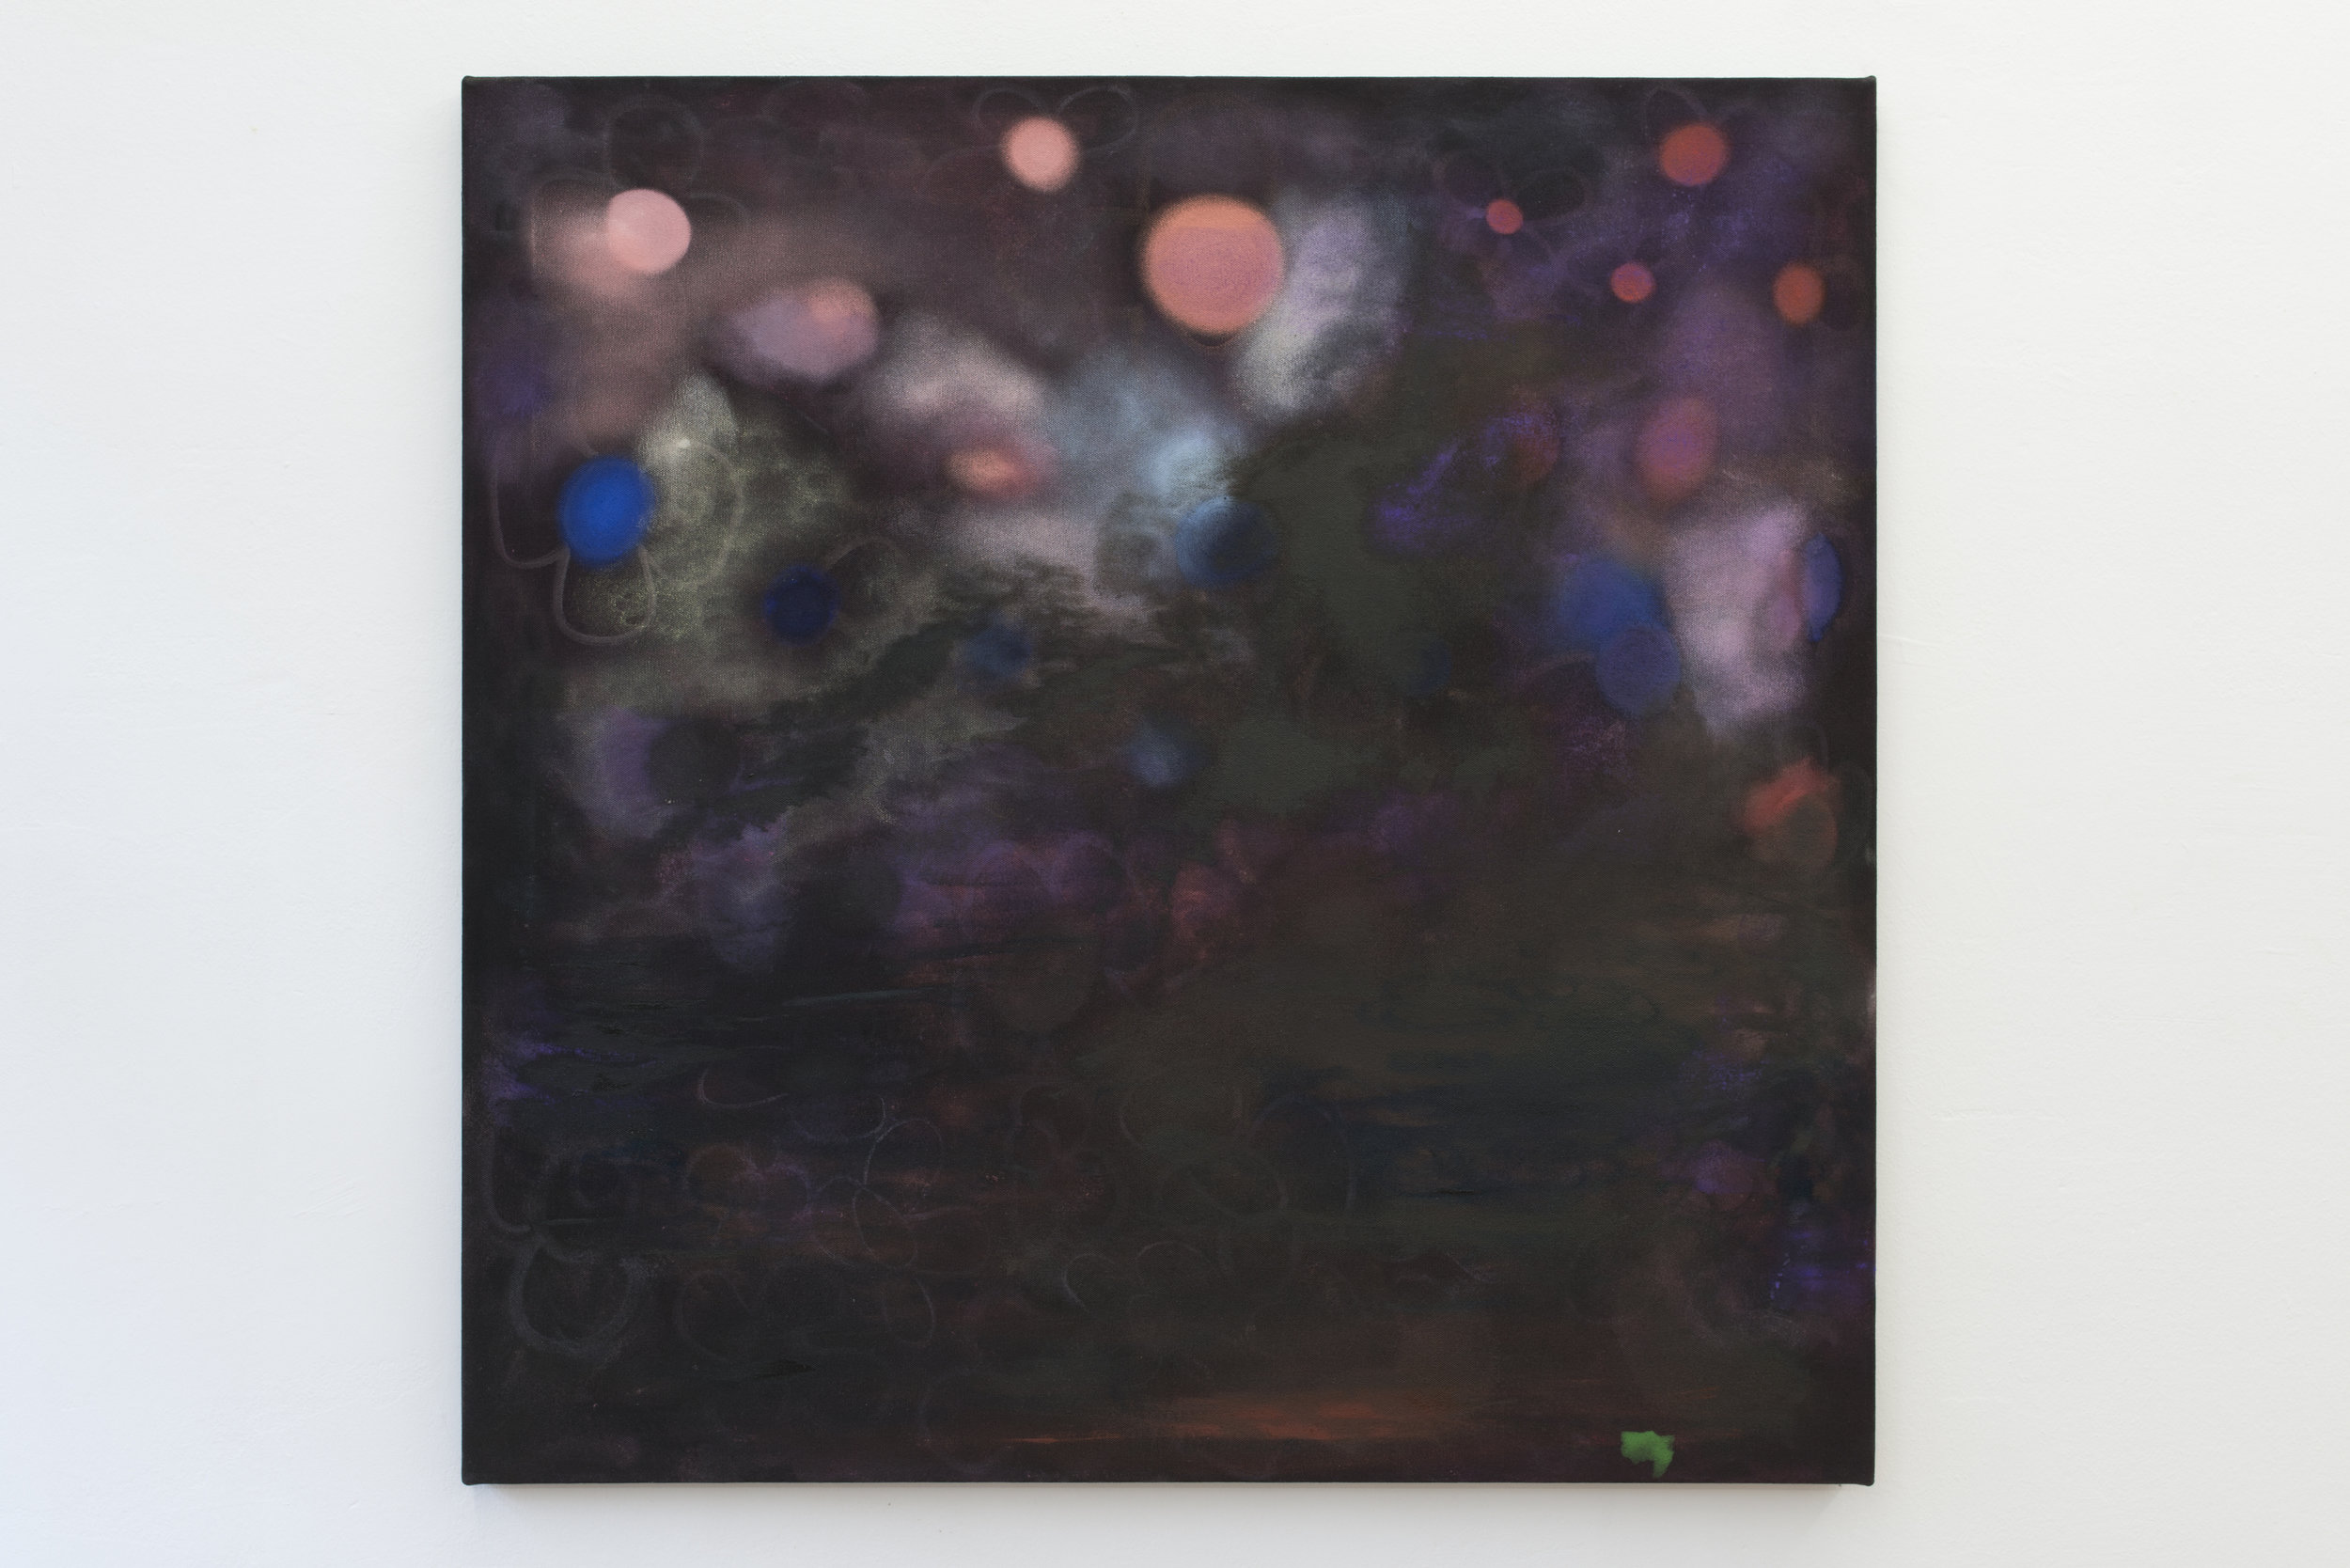 Kate Spencer Stewart,  Untitled , 2018. Oil on canvas 119.38 × 119.38 cm Courtesy of Park View/Paul Soto, Los Angeles and Brussels